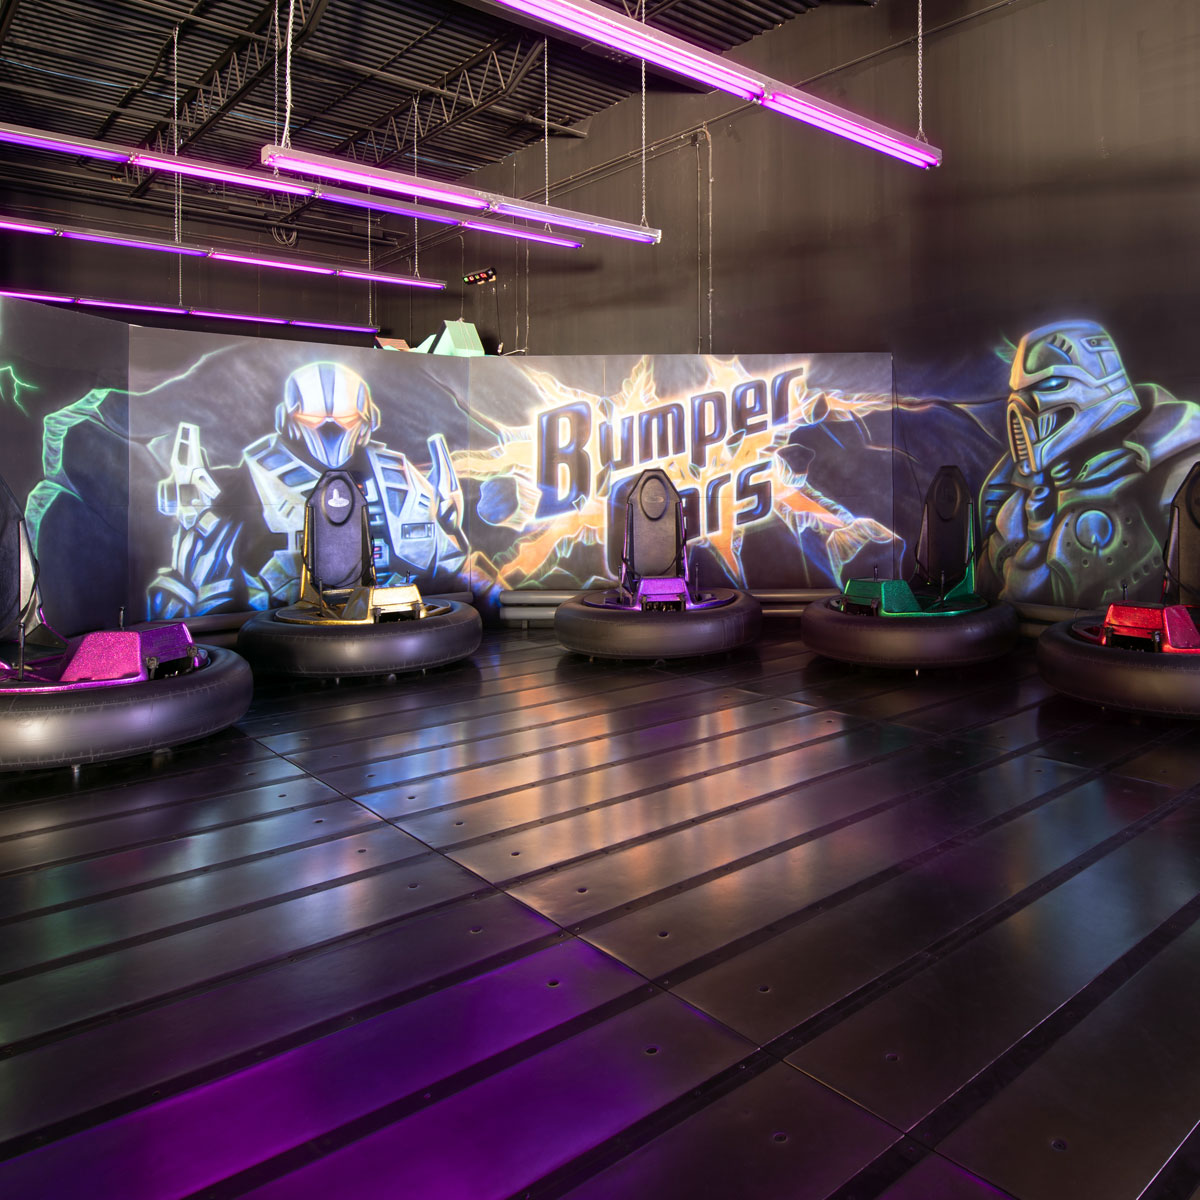 5 Ride Bumper Cars